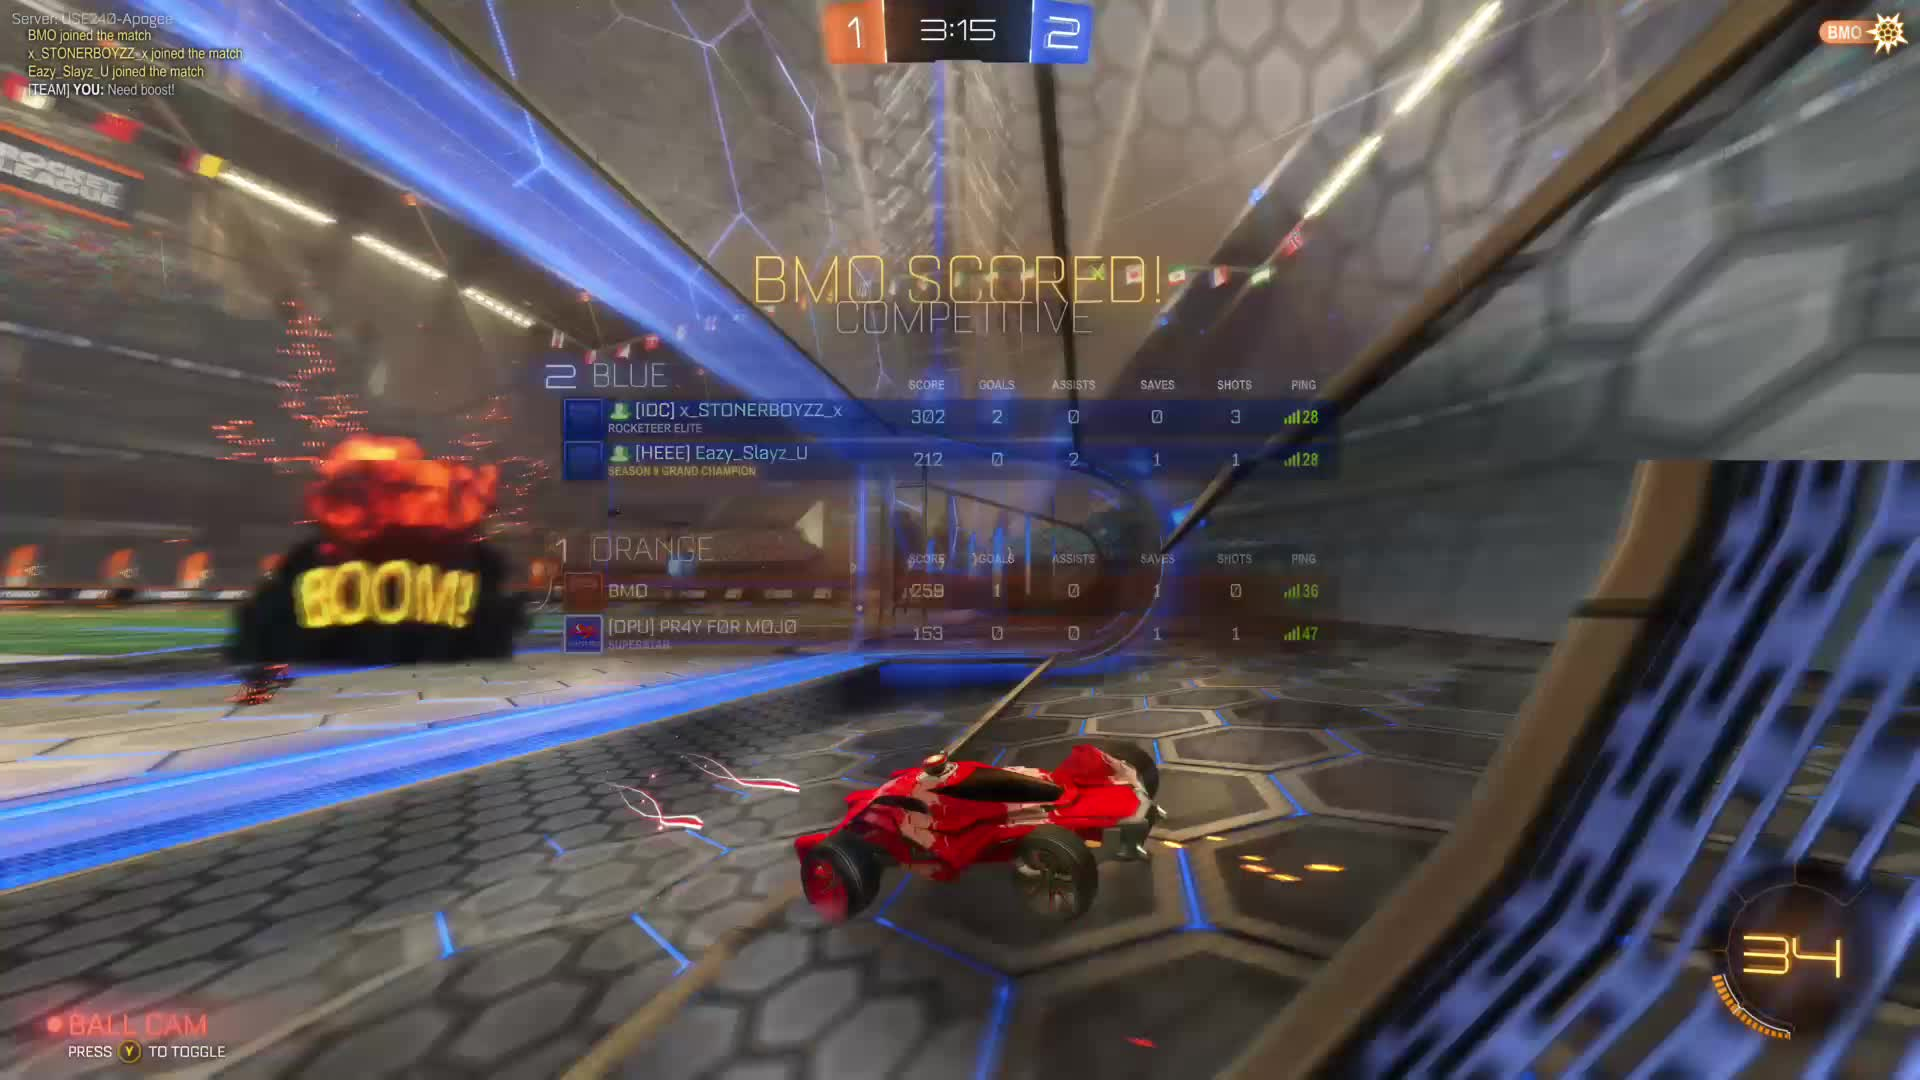 PR4Y F0R M0J0, RocketLeague, gamer dvr, xbox, xbox one,  GIFs